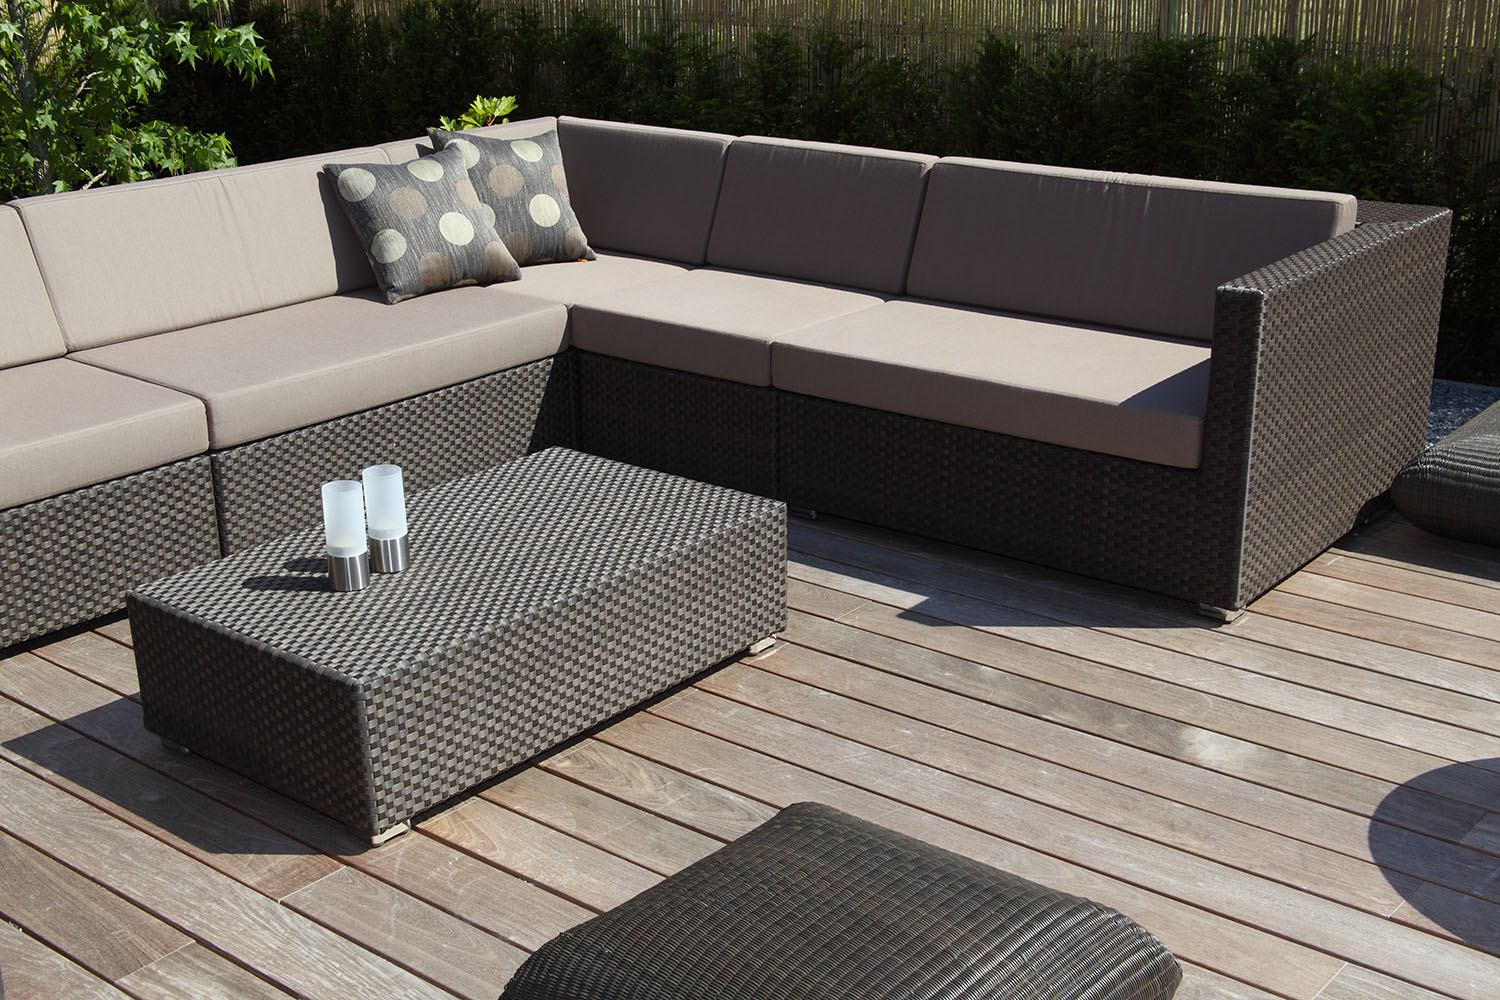 ipe lapacho die terrassendielen f r edle holzdecks. Black Bedroom Furniture Sets. Home Design Ideas